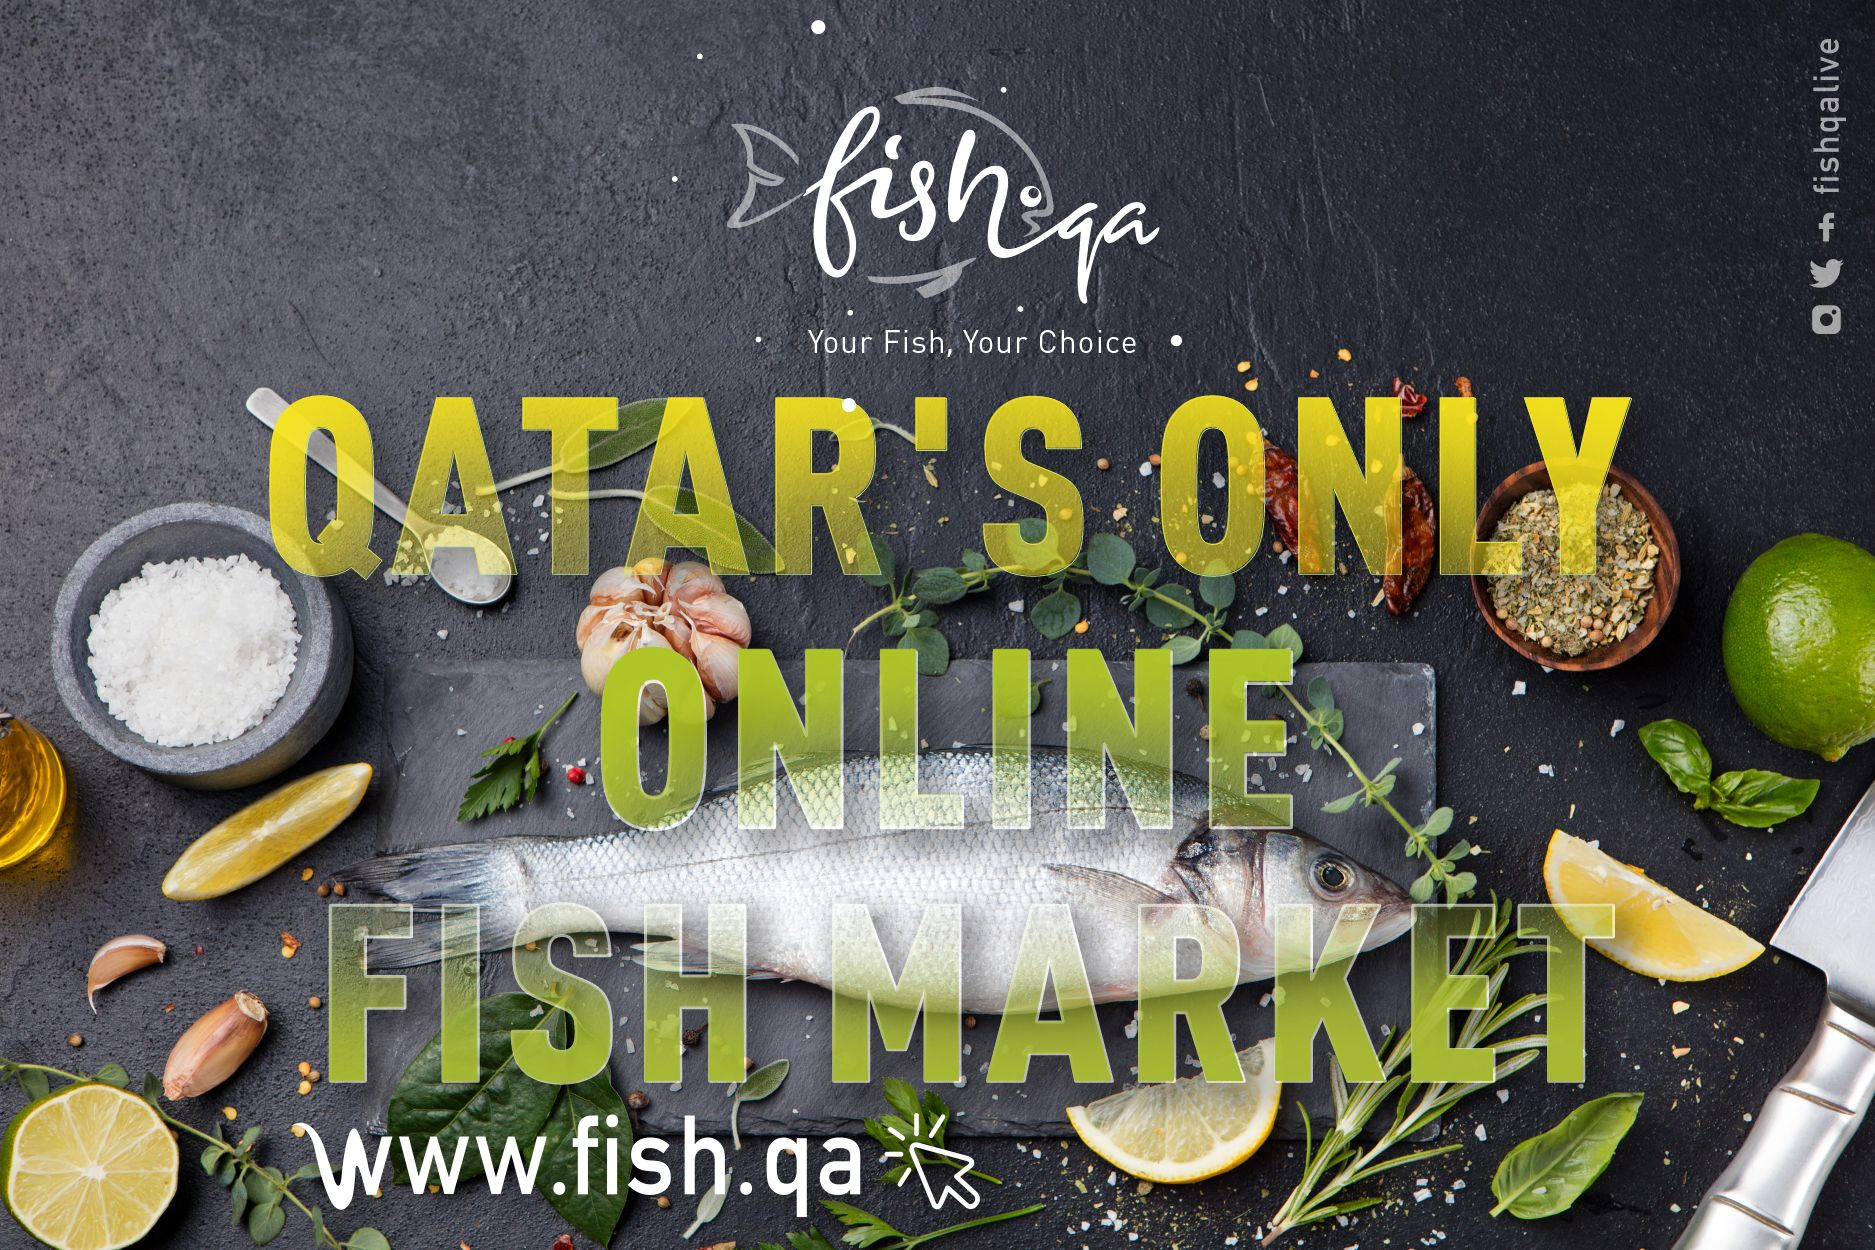 Order Fresh Daily Caught Seafood Online Visit Www Fish Qa Products Free Home Delivery Cash On Delivery Available Buy Fish Online Seafood Online Fish